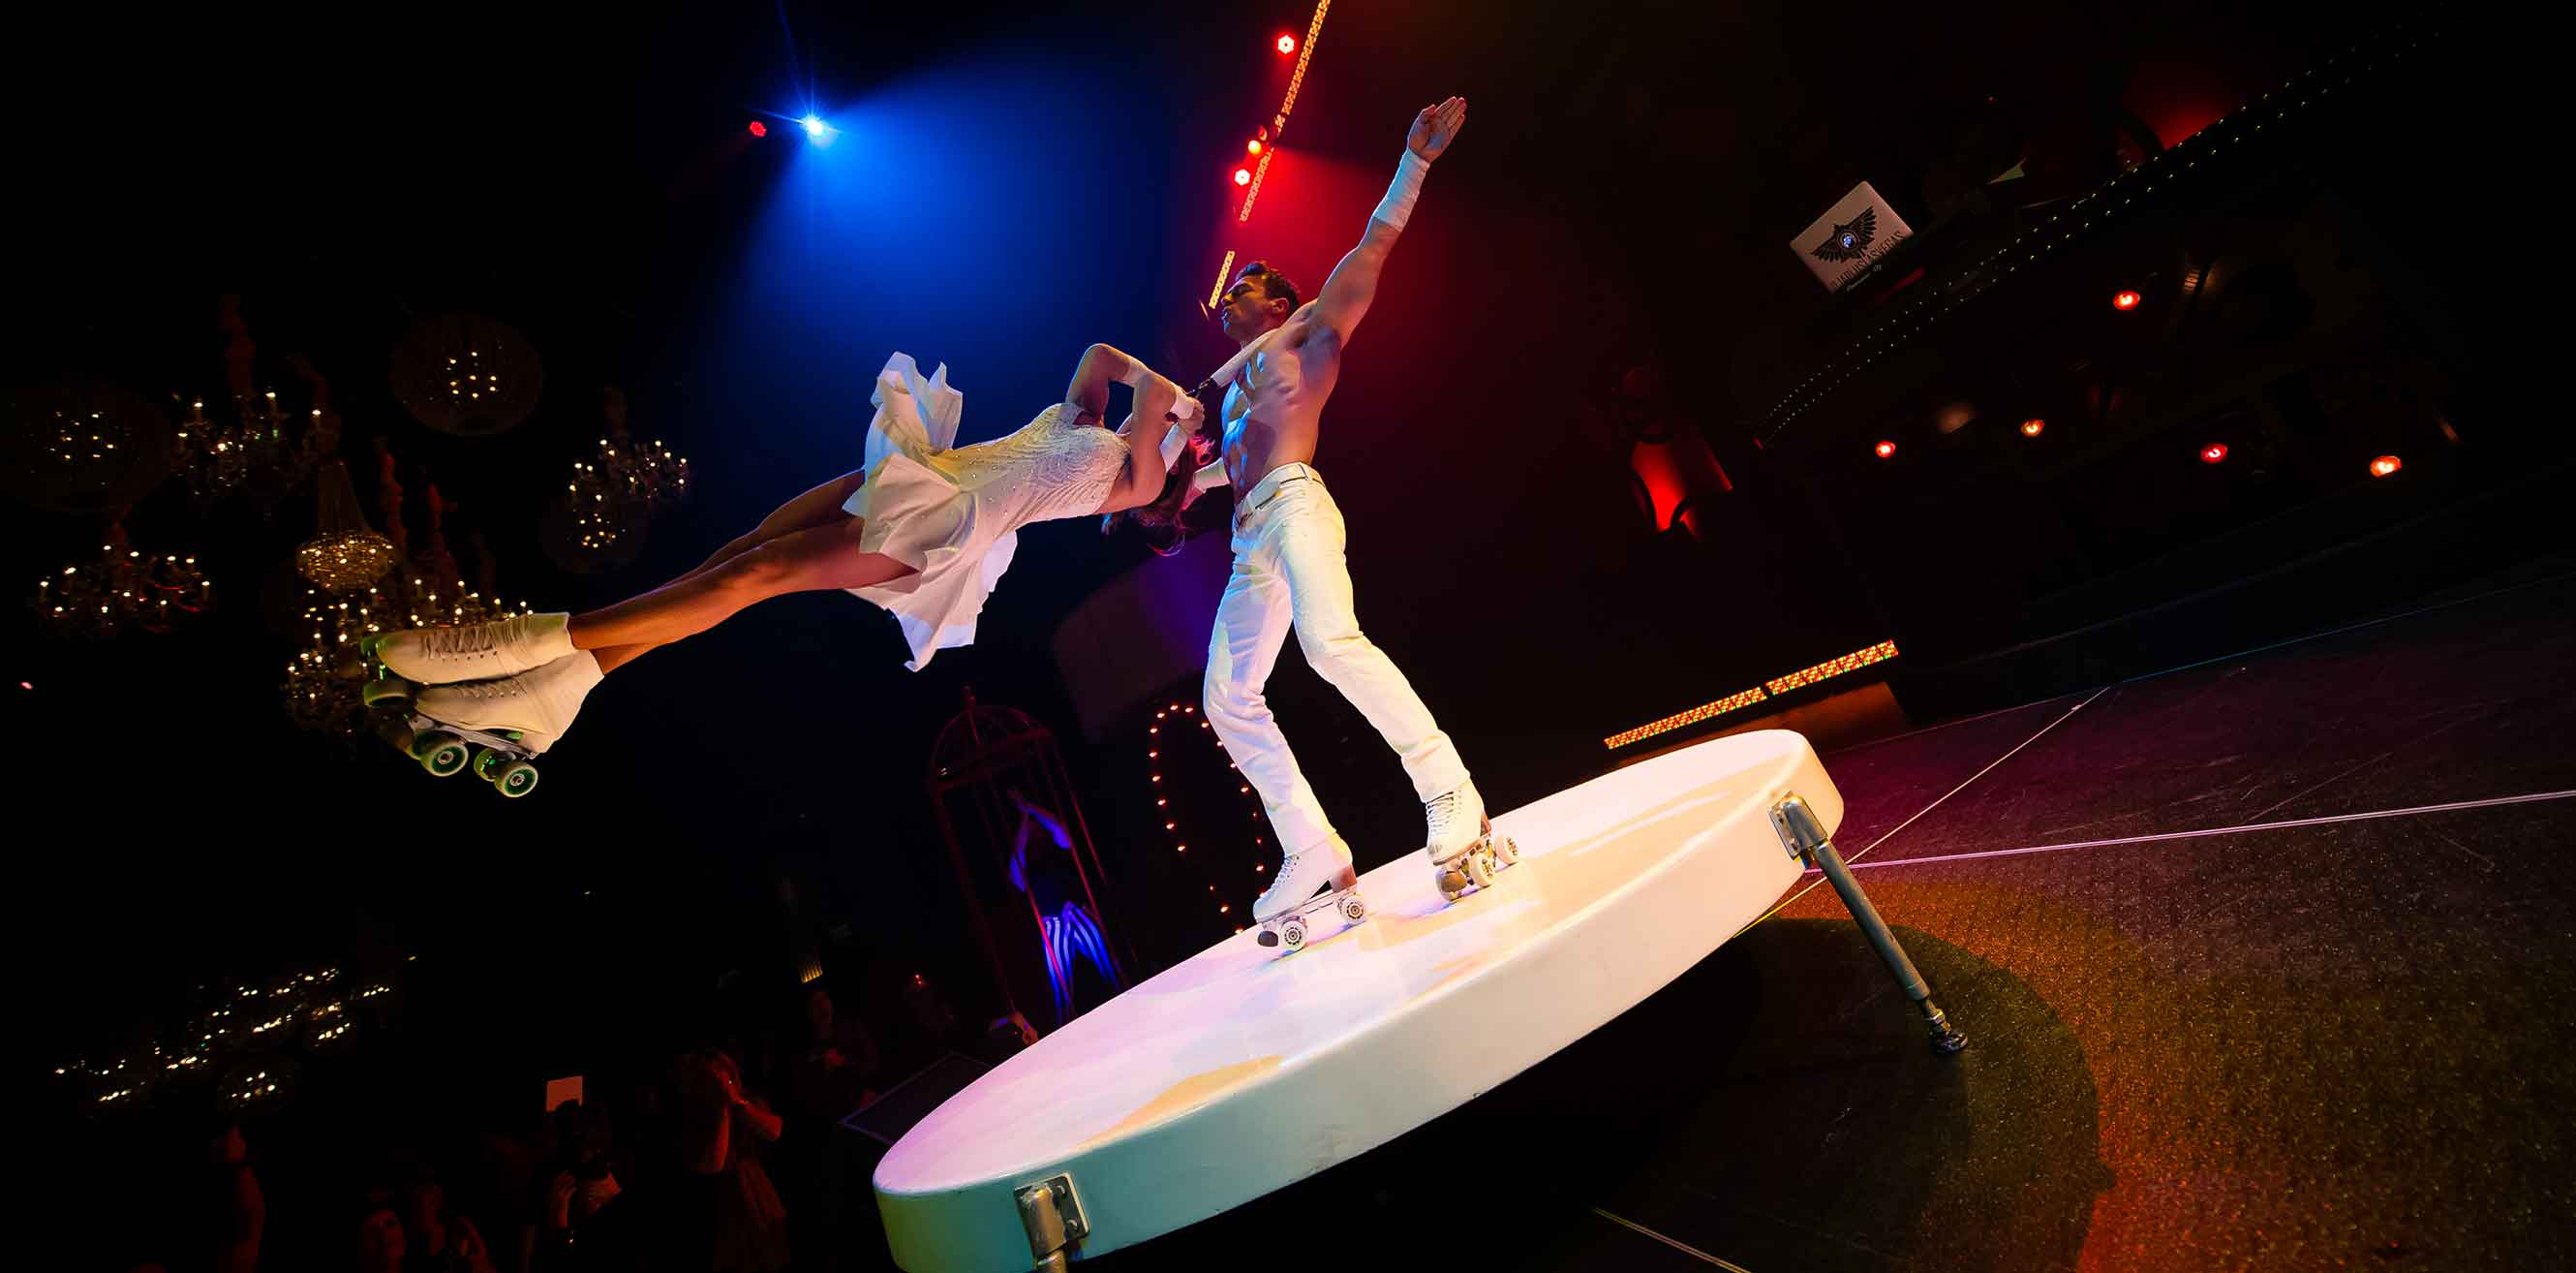 Acrobats in roller skates swinging around a stage